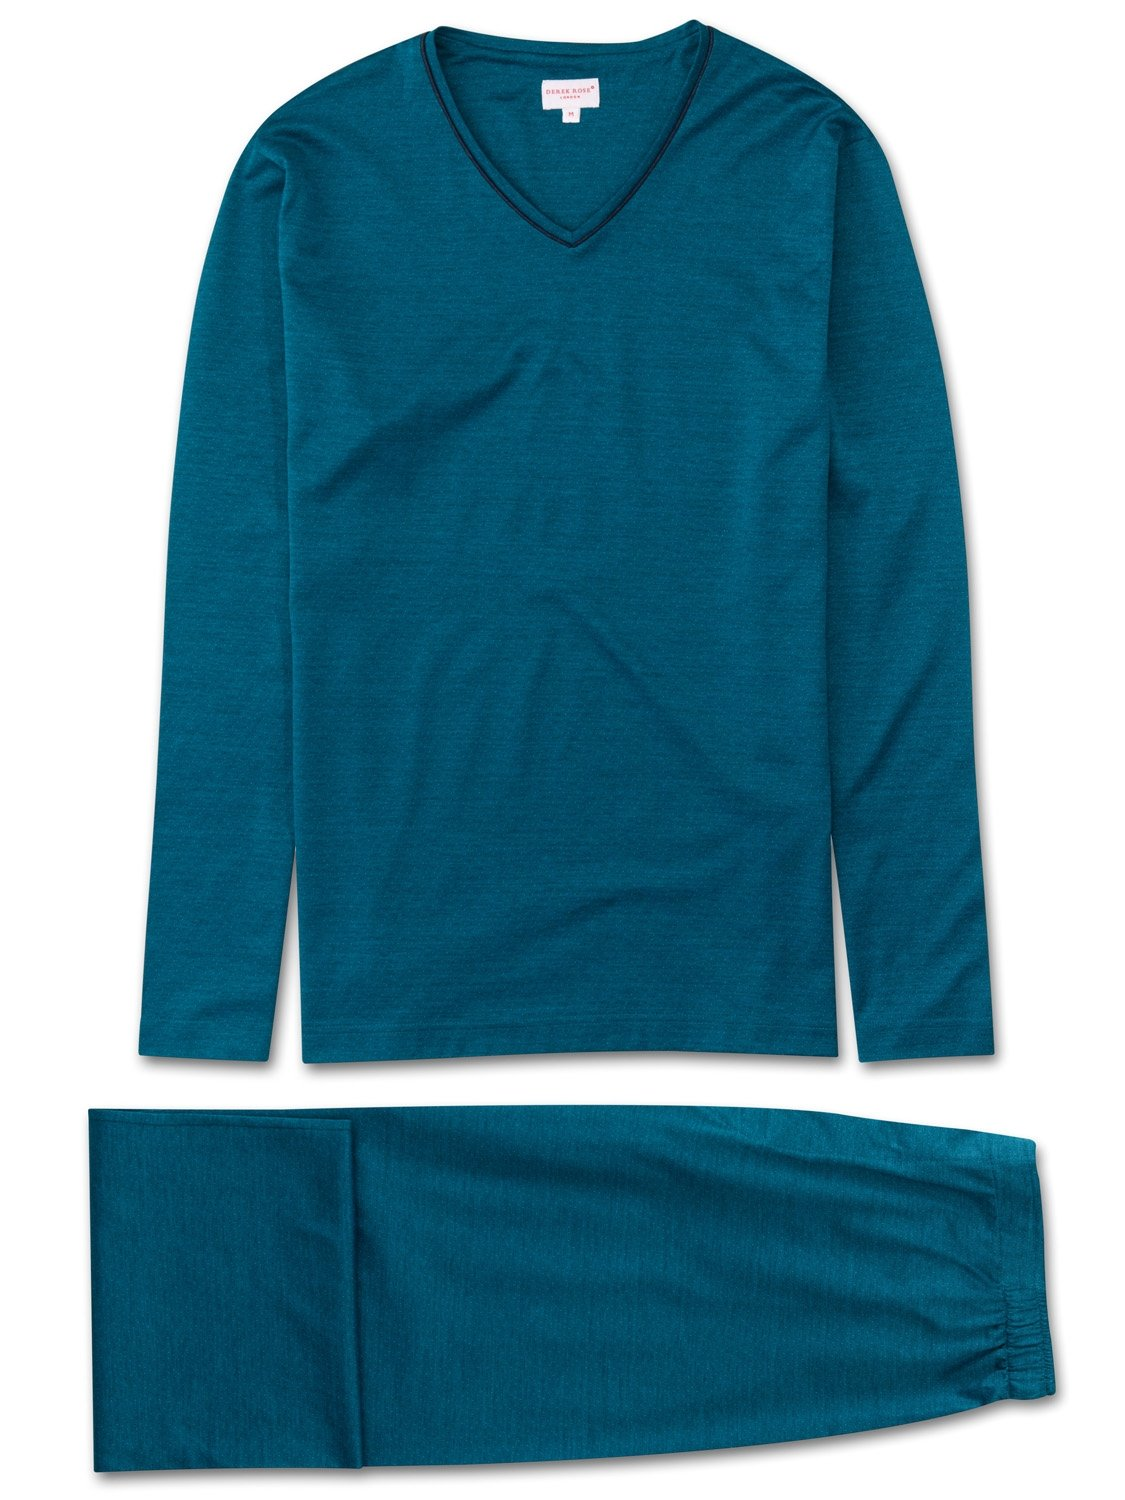 Men's Jersey V-Neck Pyjamas Bari 14 Stretch Cotton Teal